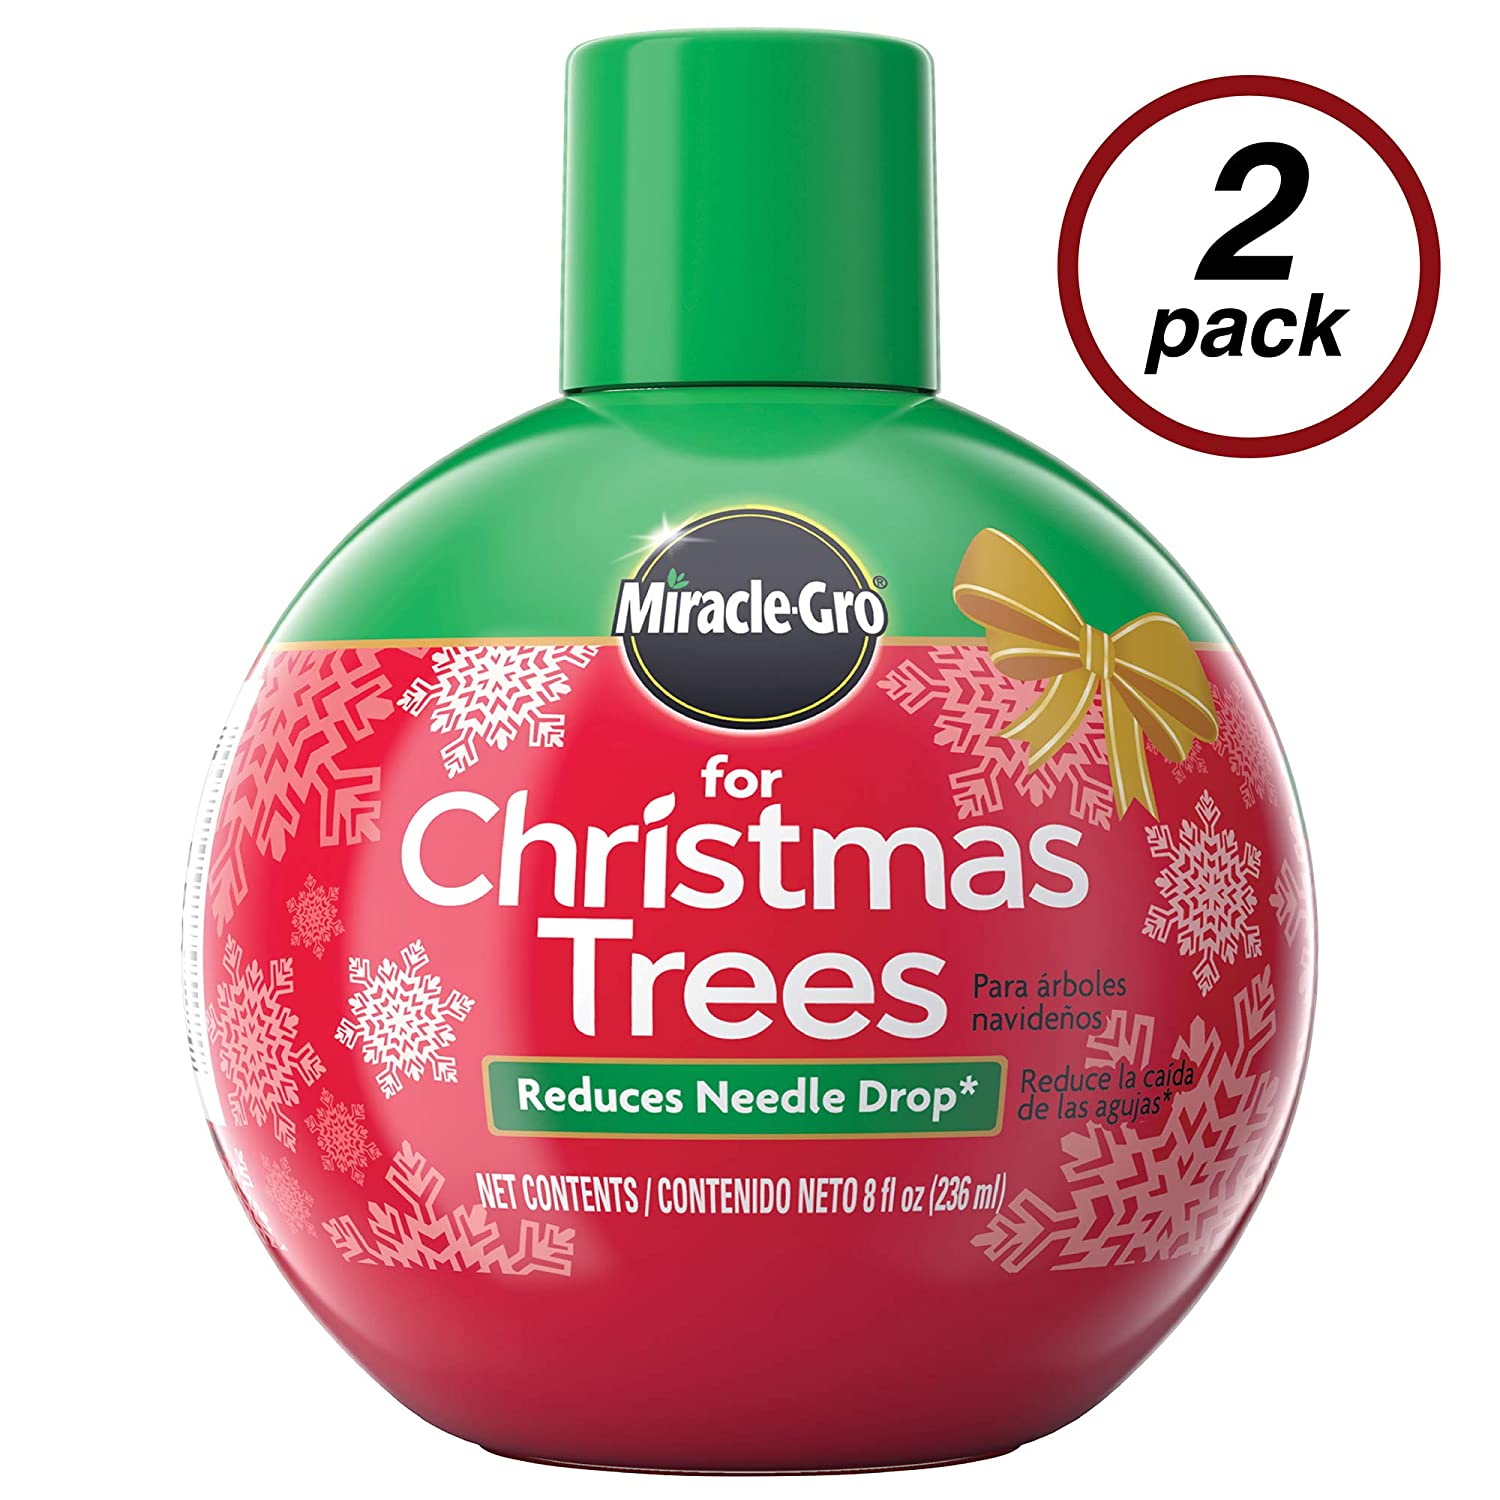 Miracle-Gro for Christmas Tree Plant Food, Hydrates Trees and Keeps Christmas Trees Green All Holiday Season, 2 Pack